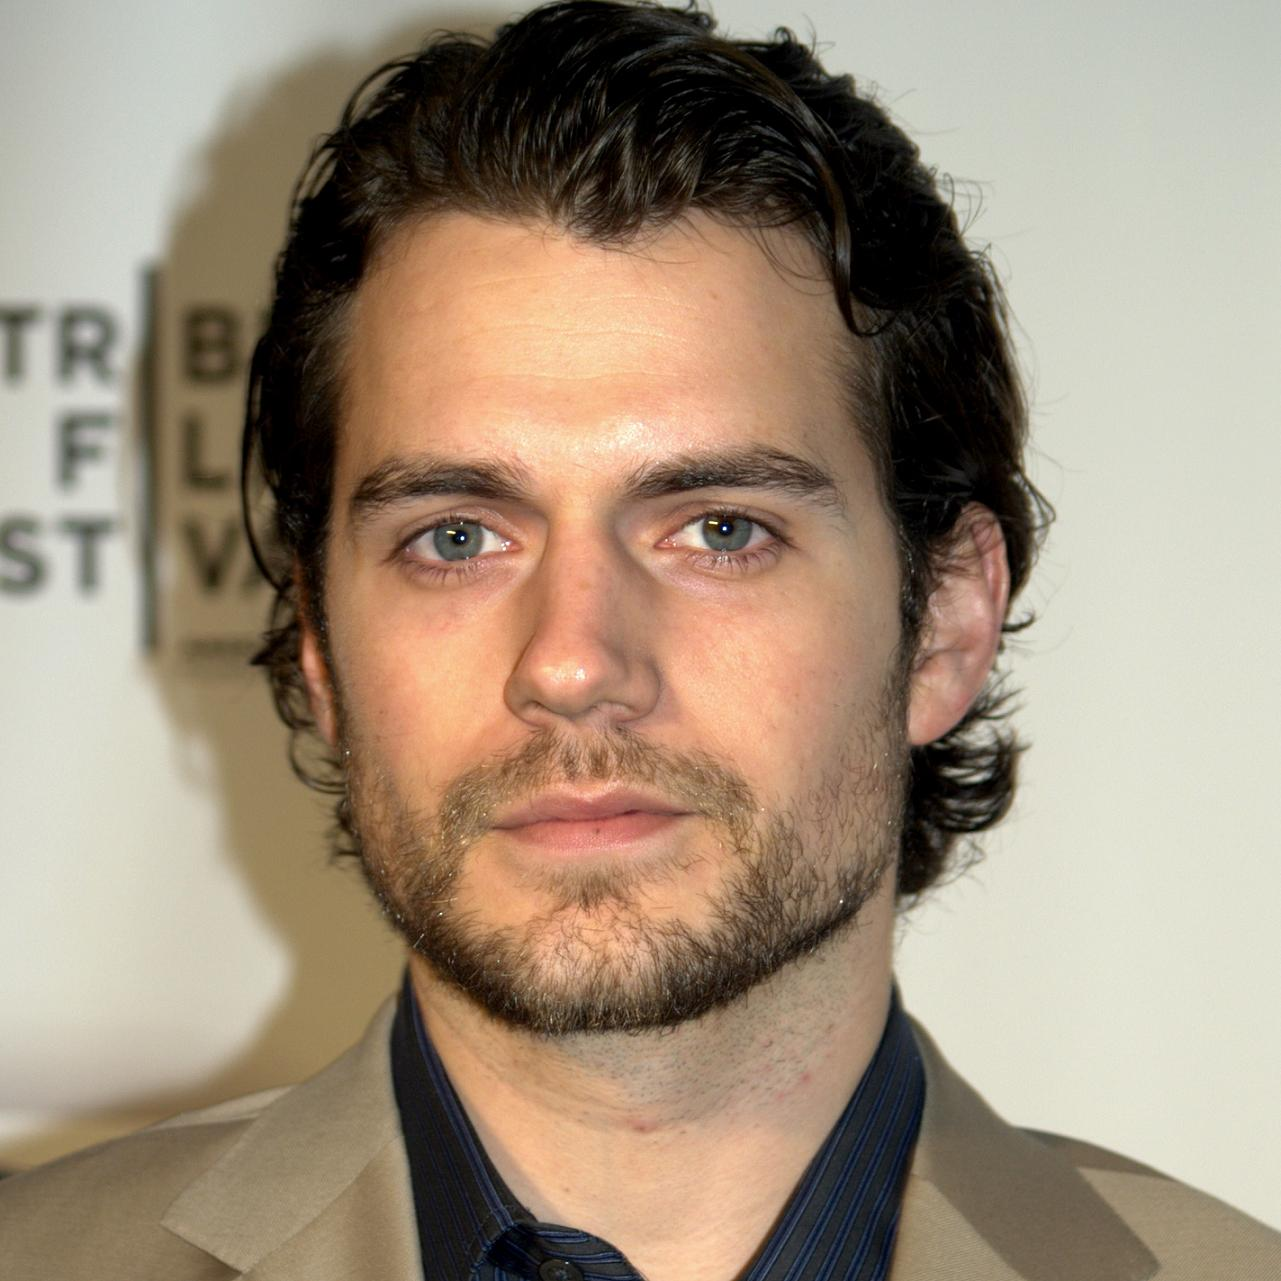 Henry Cavill Bio, Net Worth, Facts